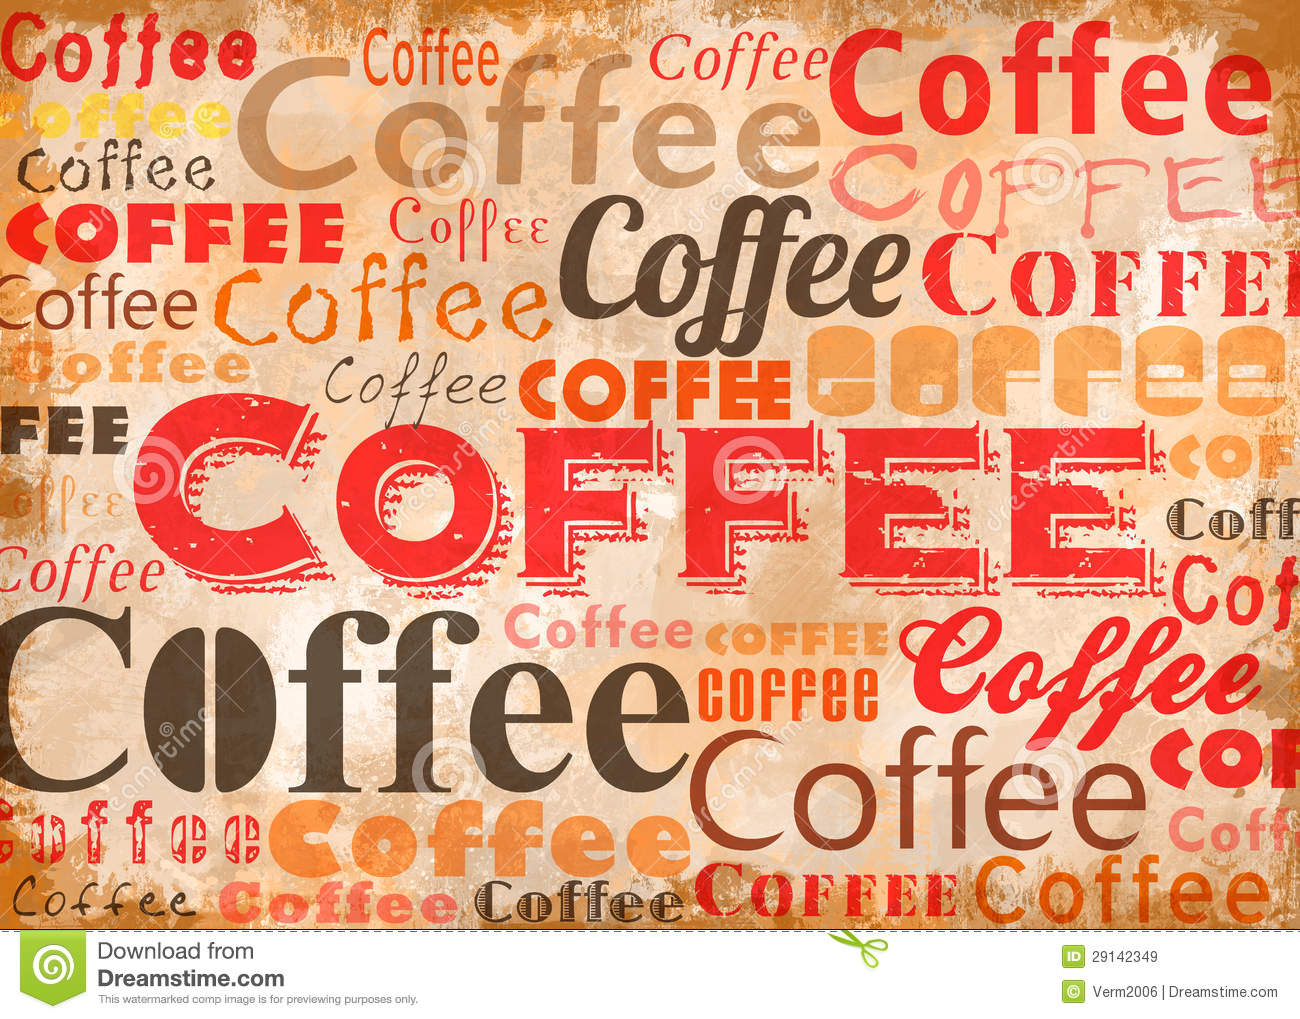 Collage Designs Coffee Typo Collage Royalty Free Stock Images Image